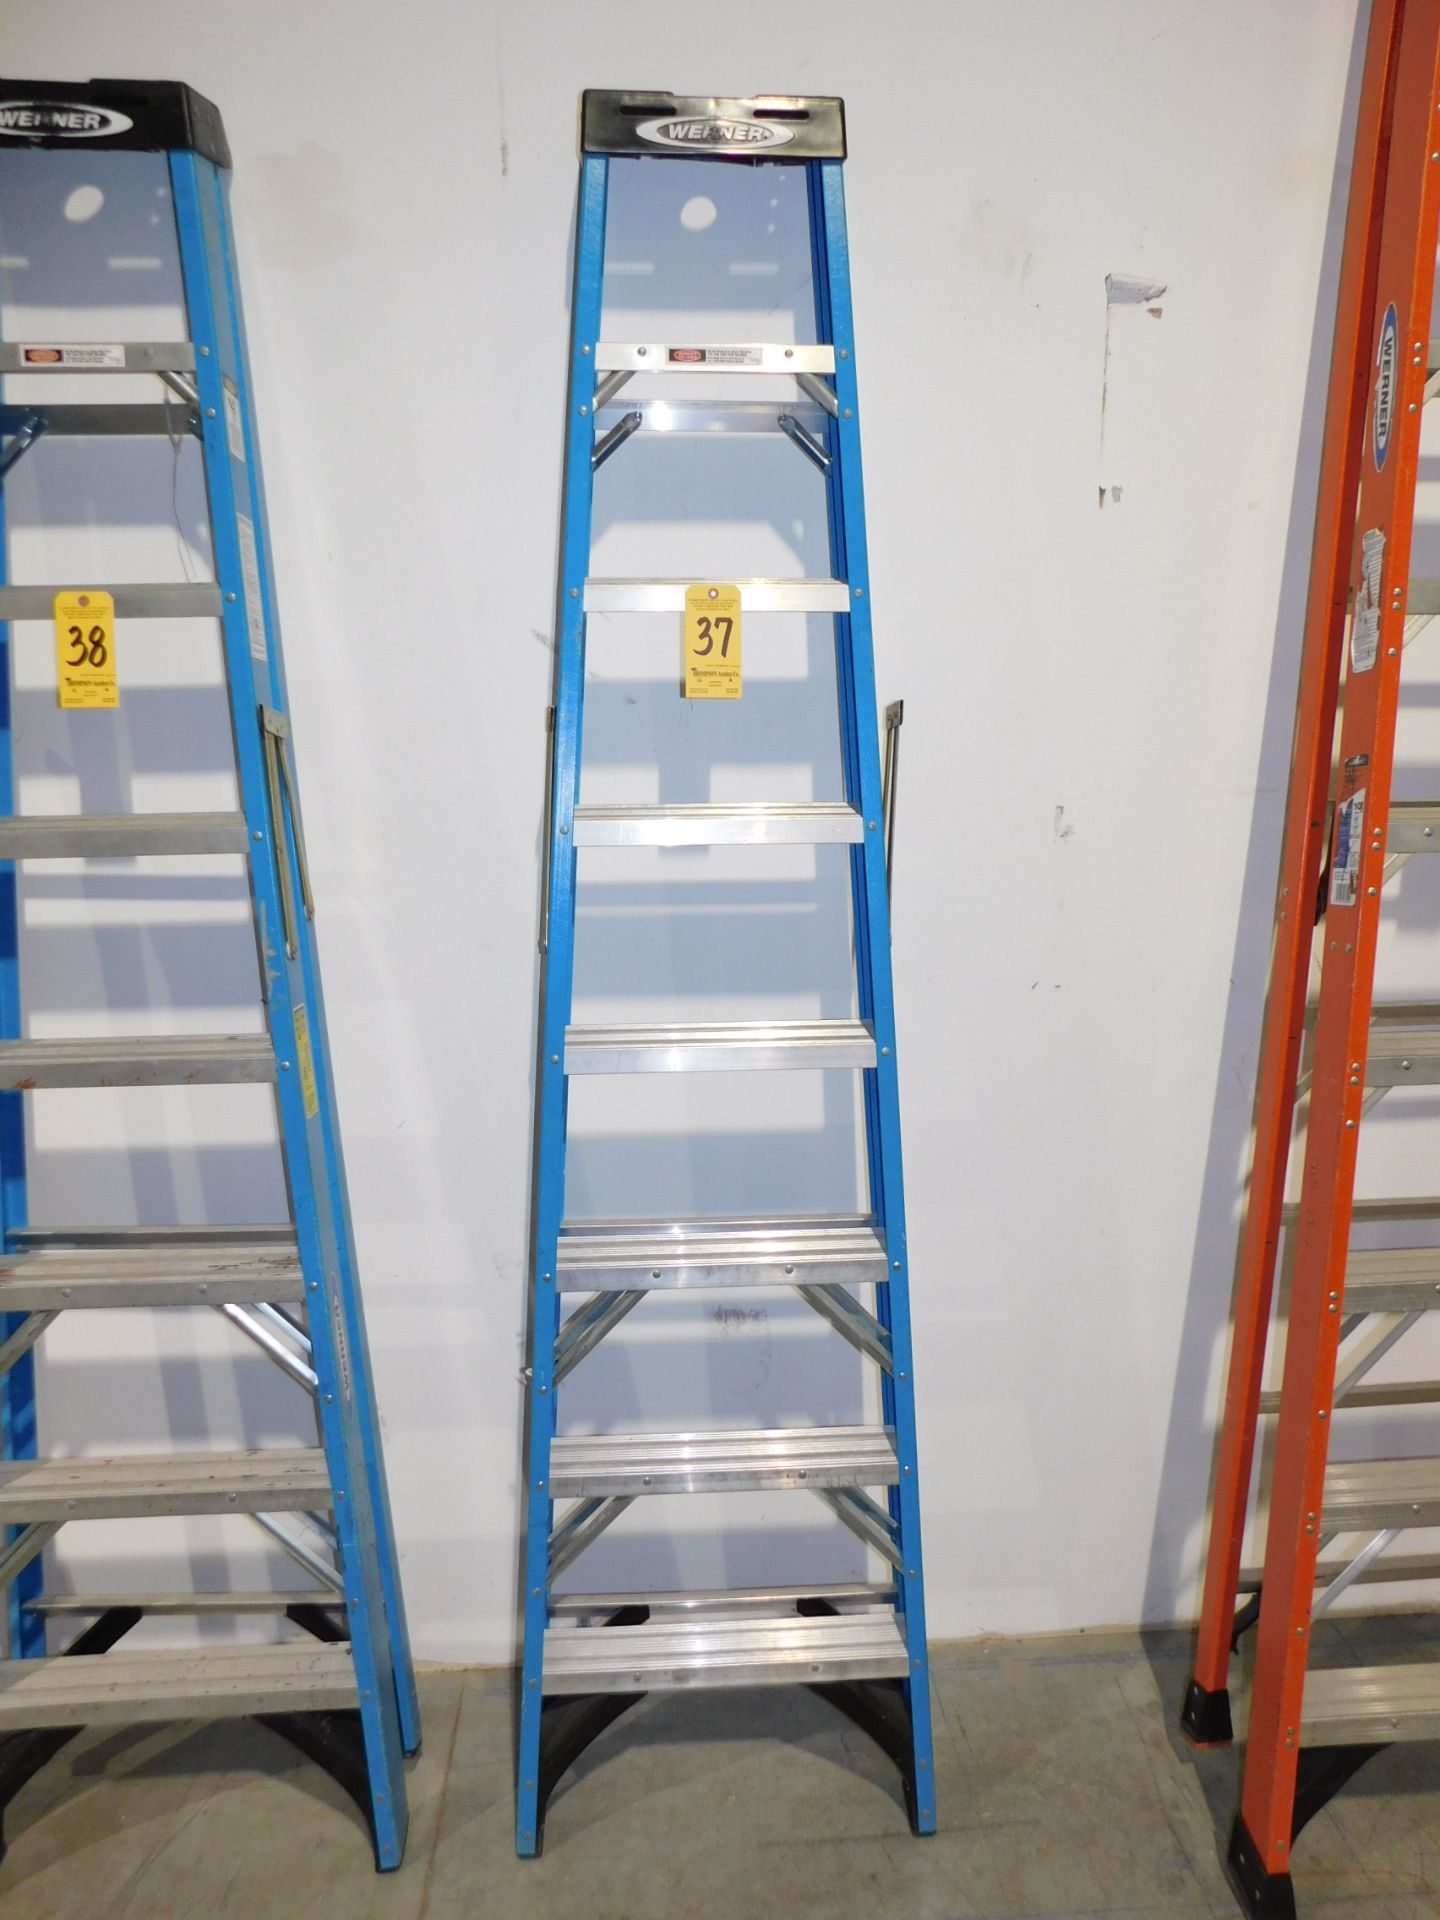 Lot 37 - Werner 8' Fiberglass Step Ladder